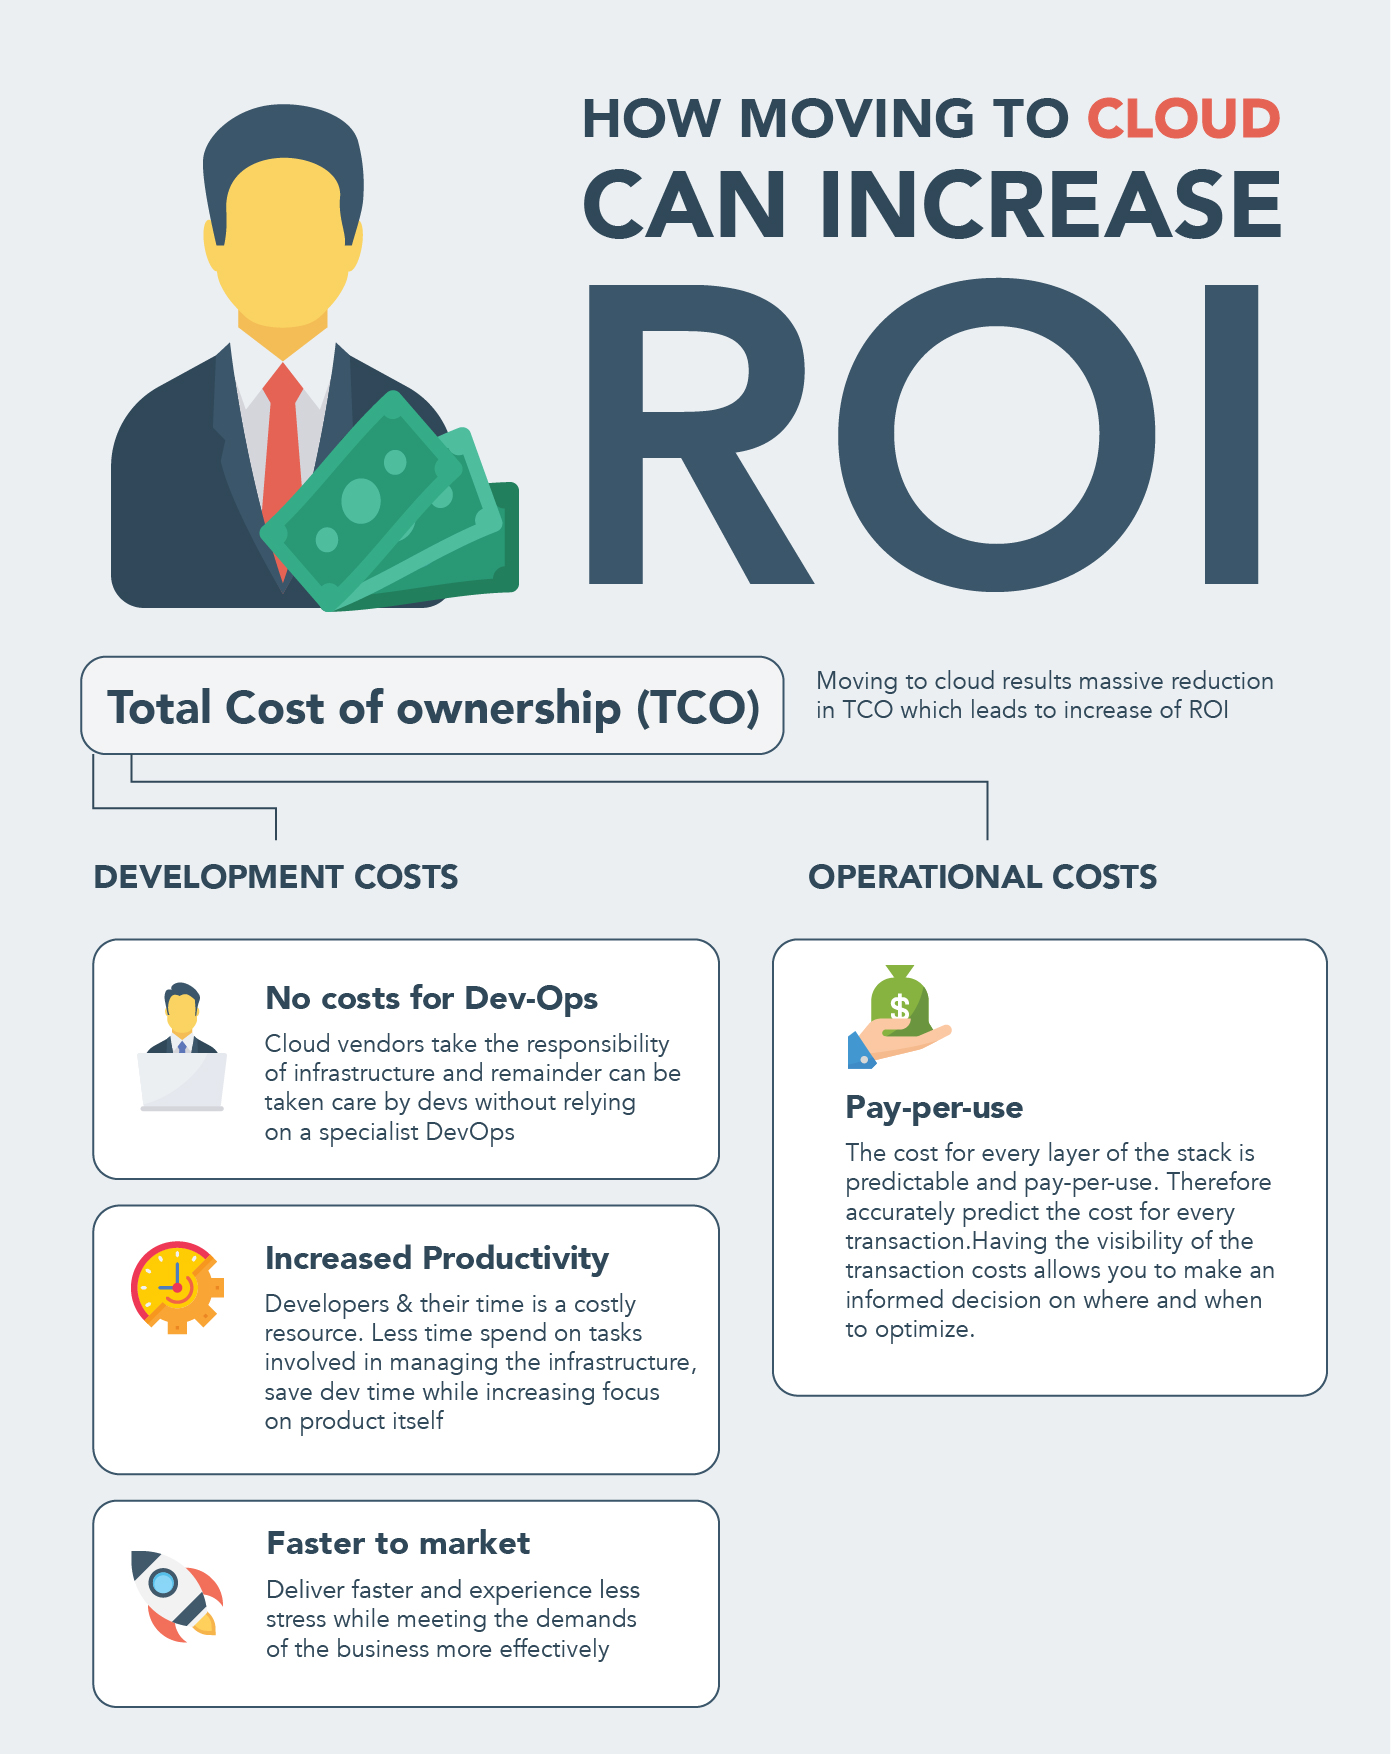 how moving to cloud can increase ROI